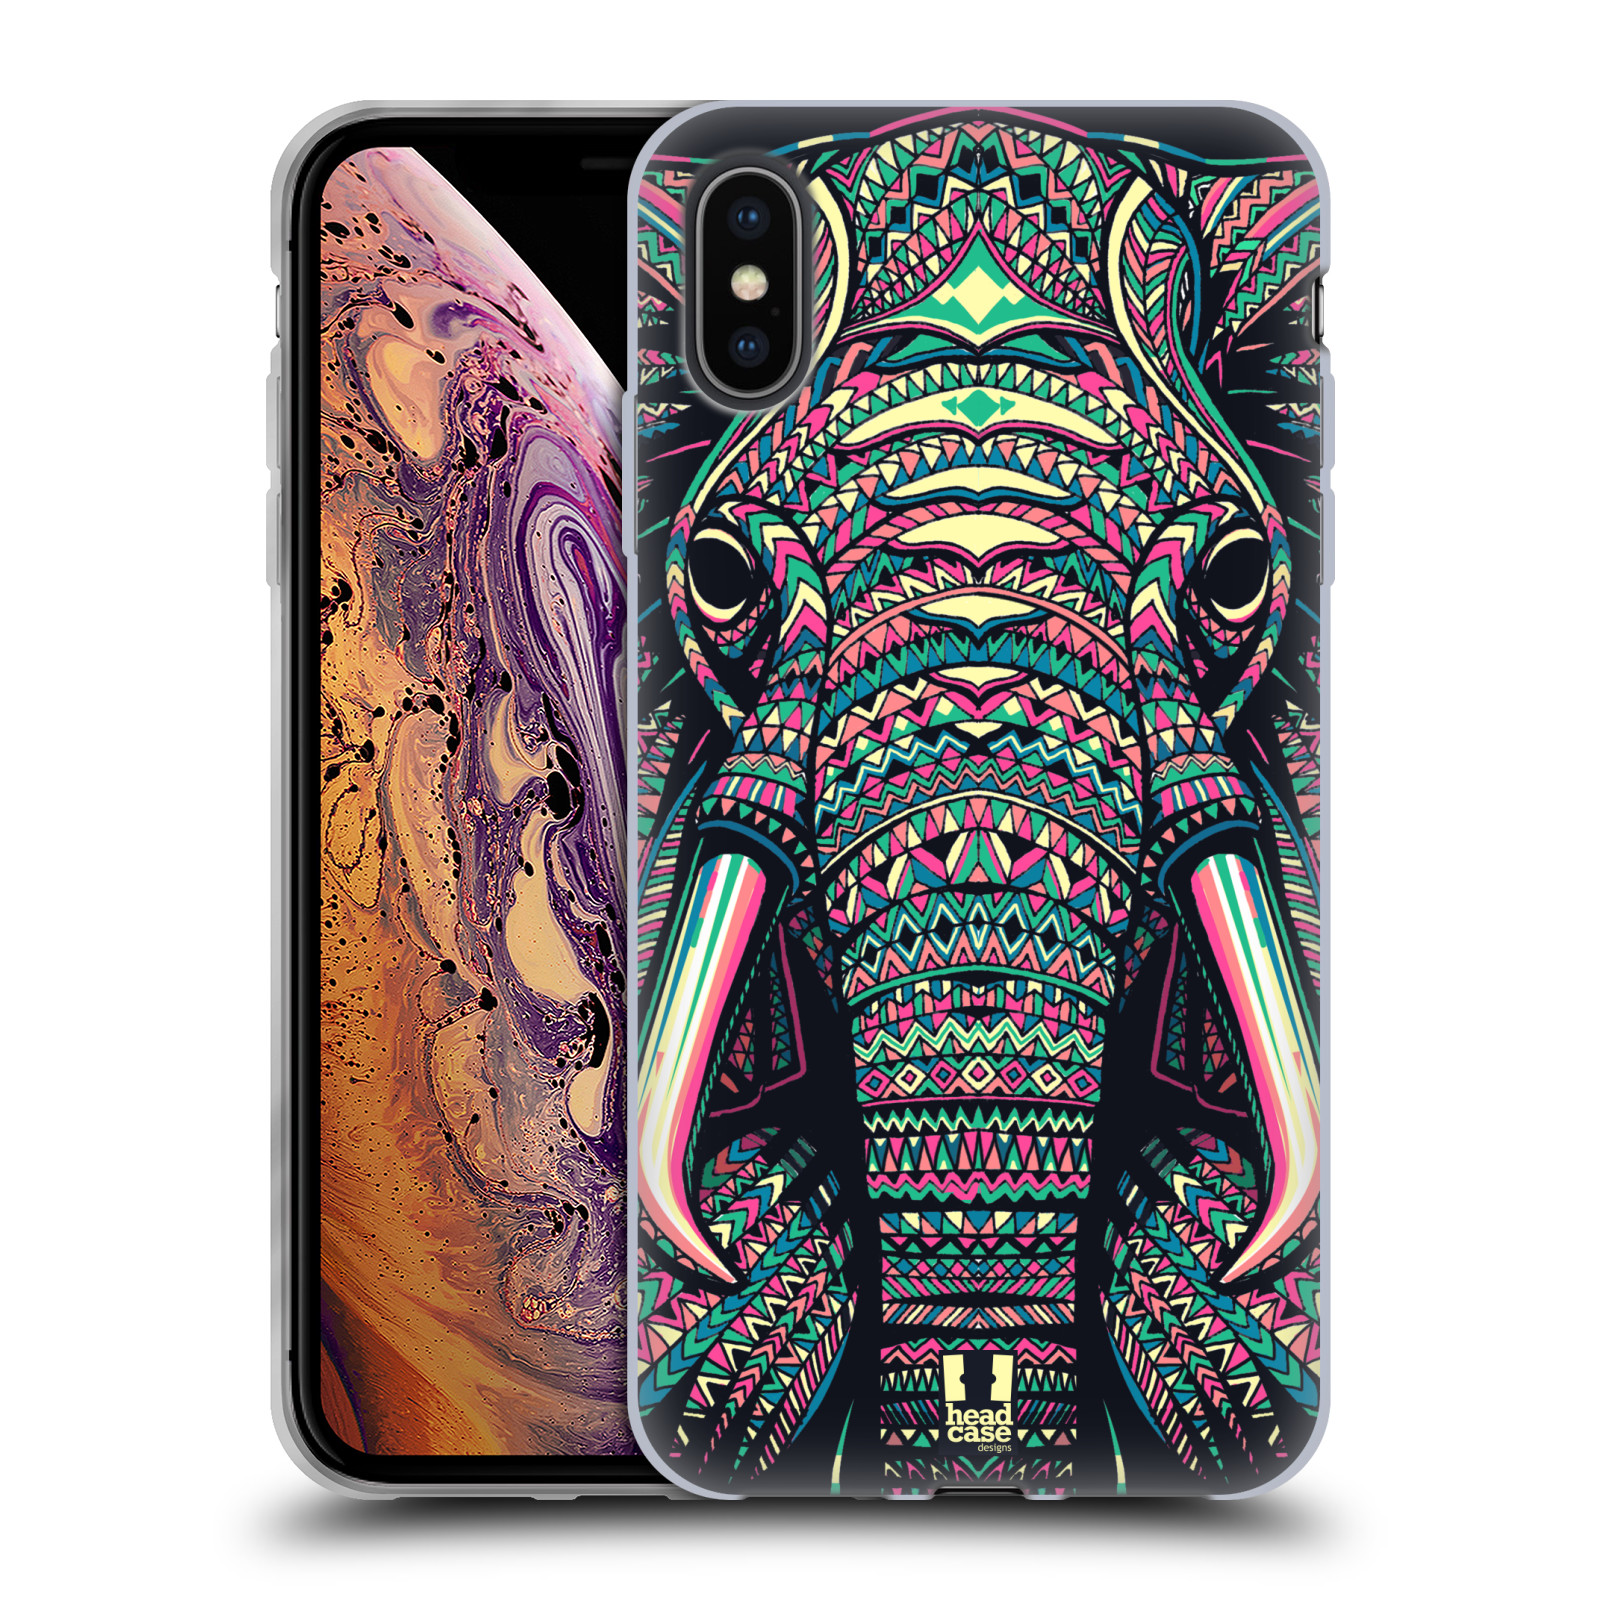 Silikonové pouzdro na mobil Apple iPhone XS Max - Head Case - AZTEC SLON